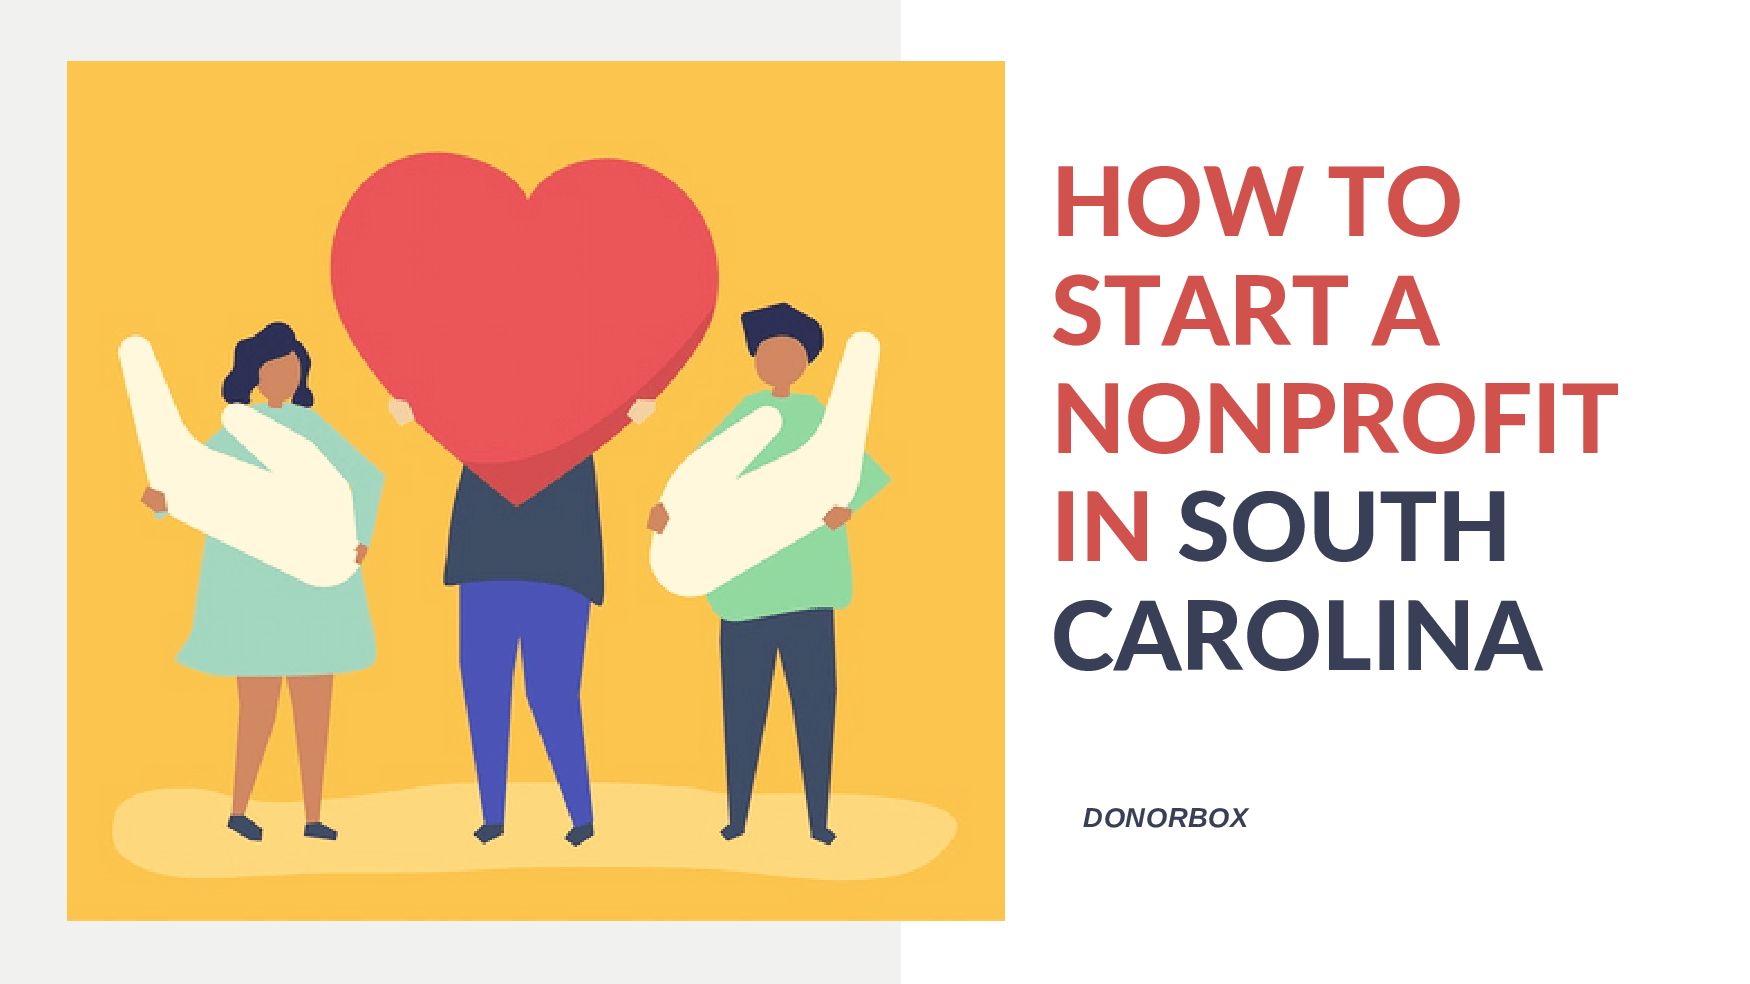 how to start a nonprofit in south carolina